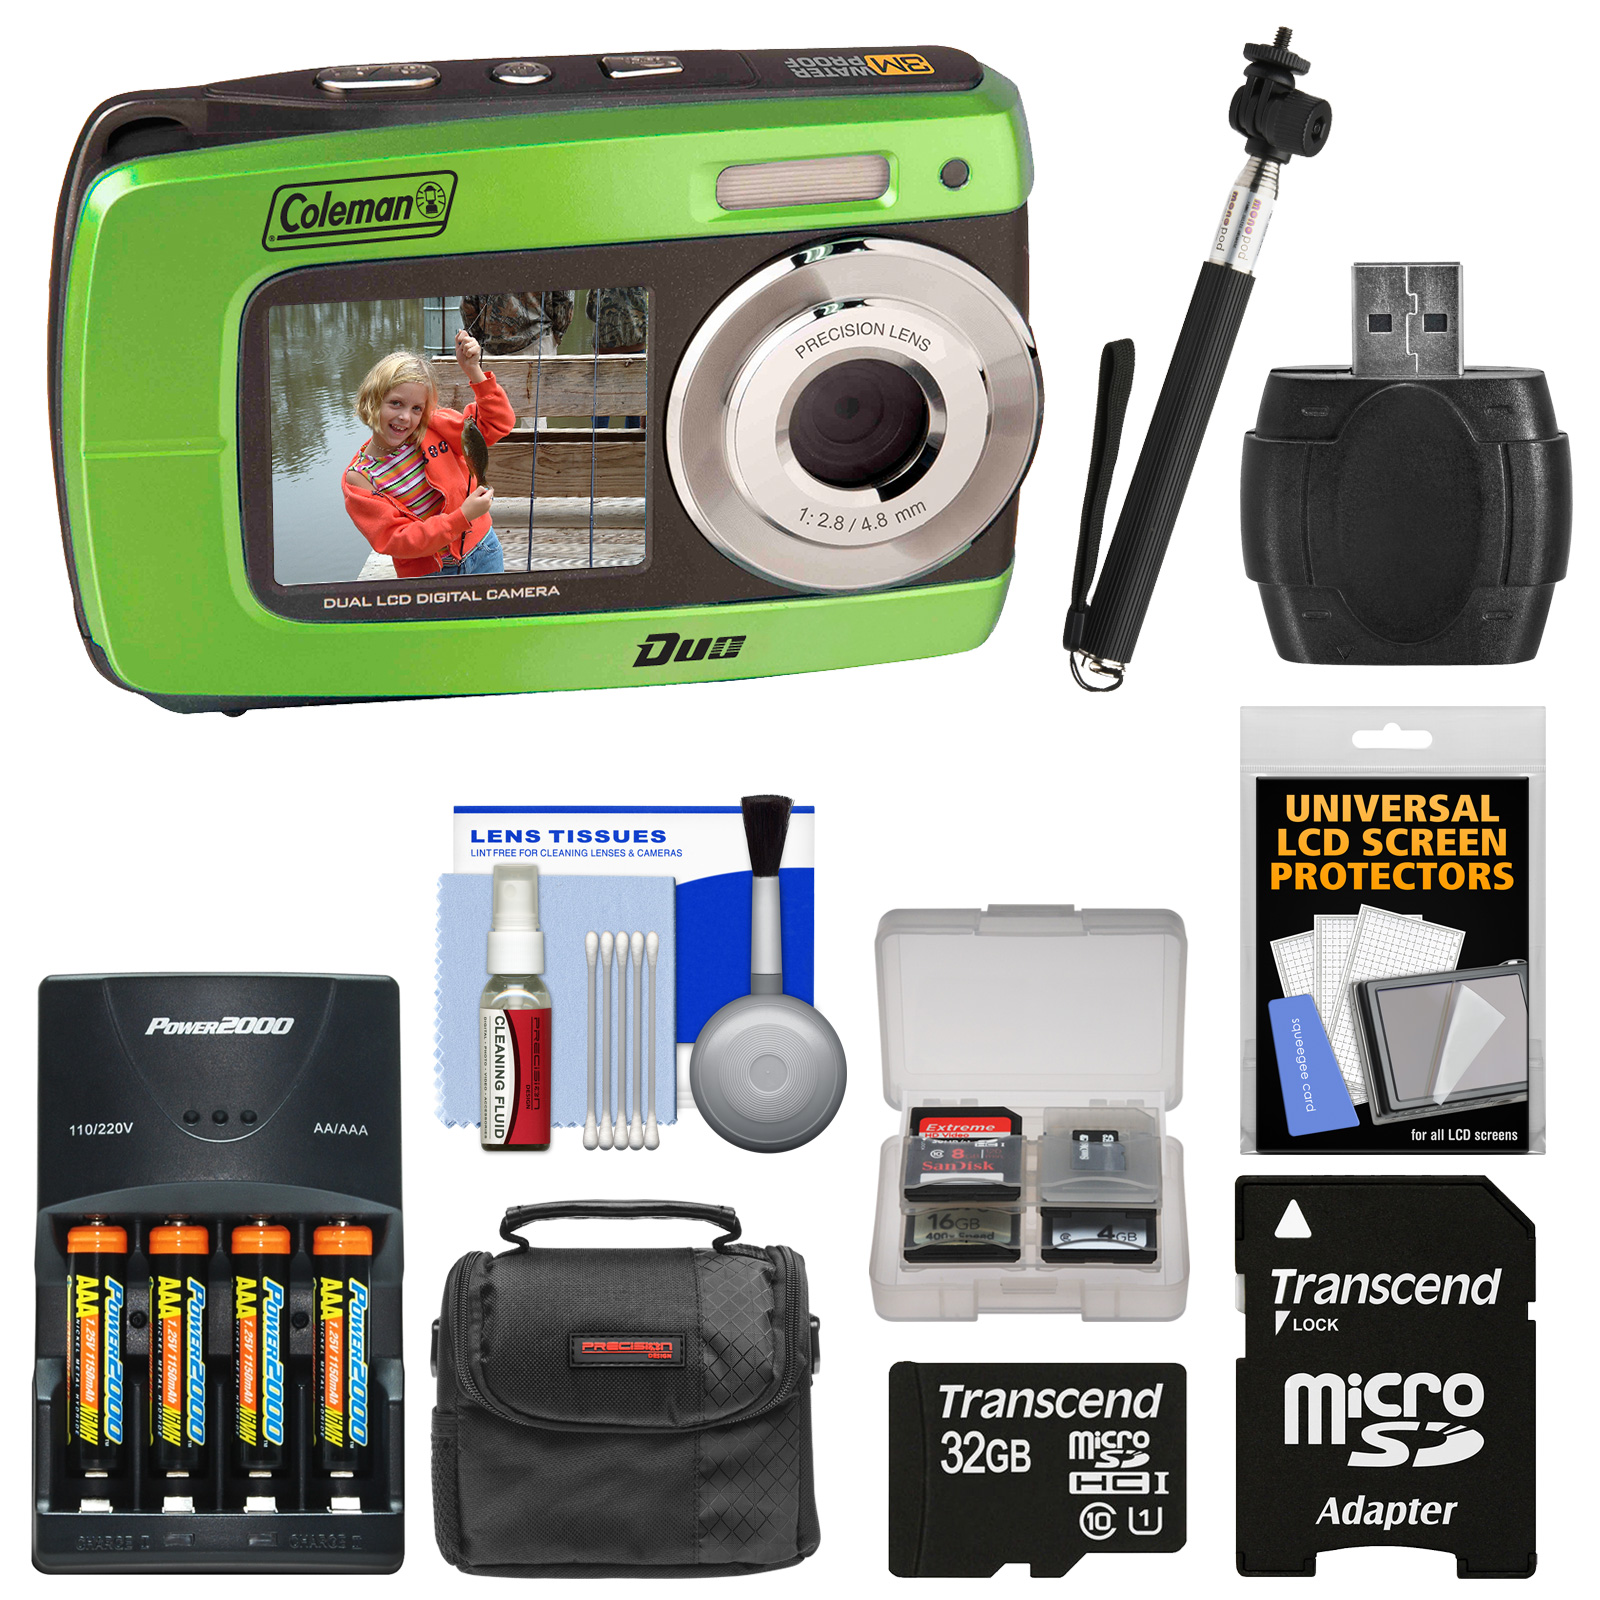 Coleman Duo2 2V8WP Dual Screen Shock & Waterproof Digital Camera (Green) with 32GB Card + Batteries & Charger + Case +... by Coleman